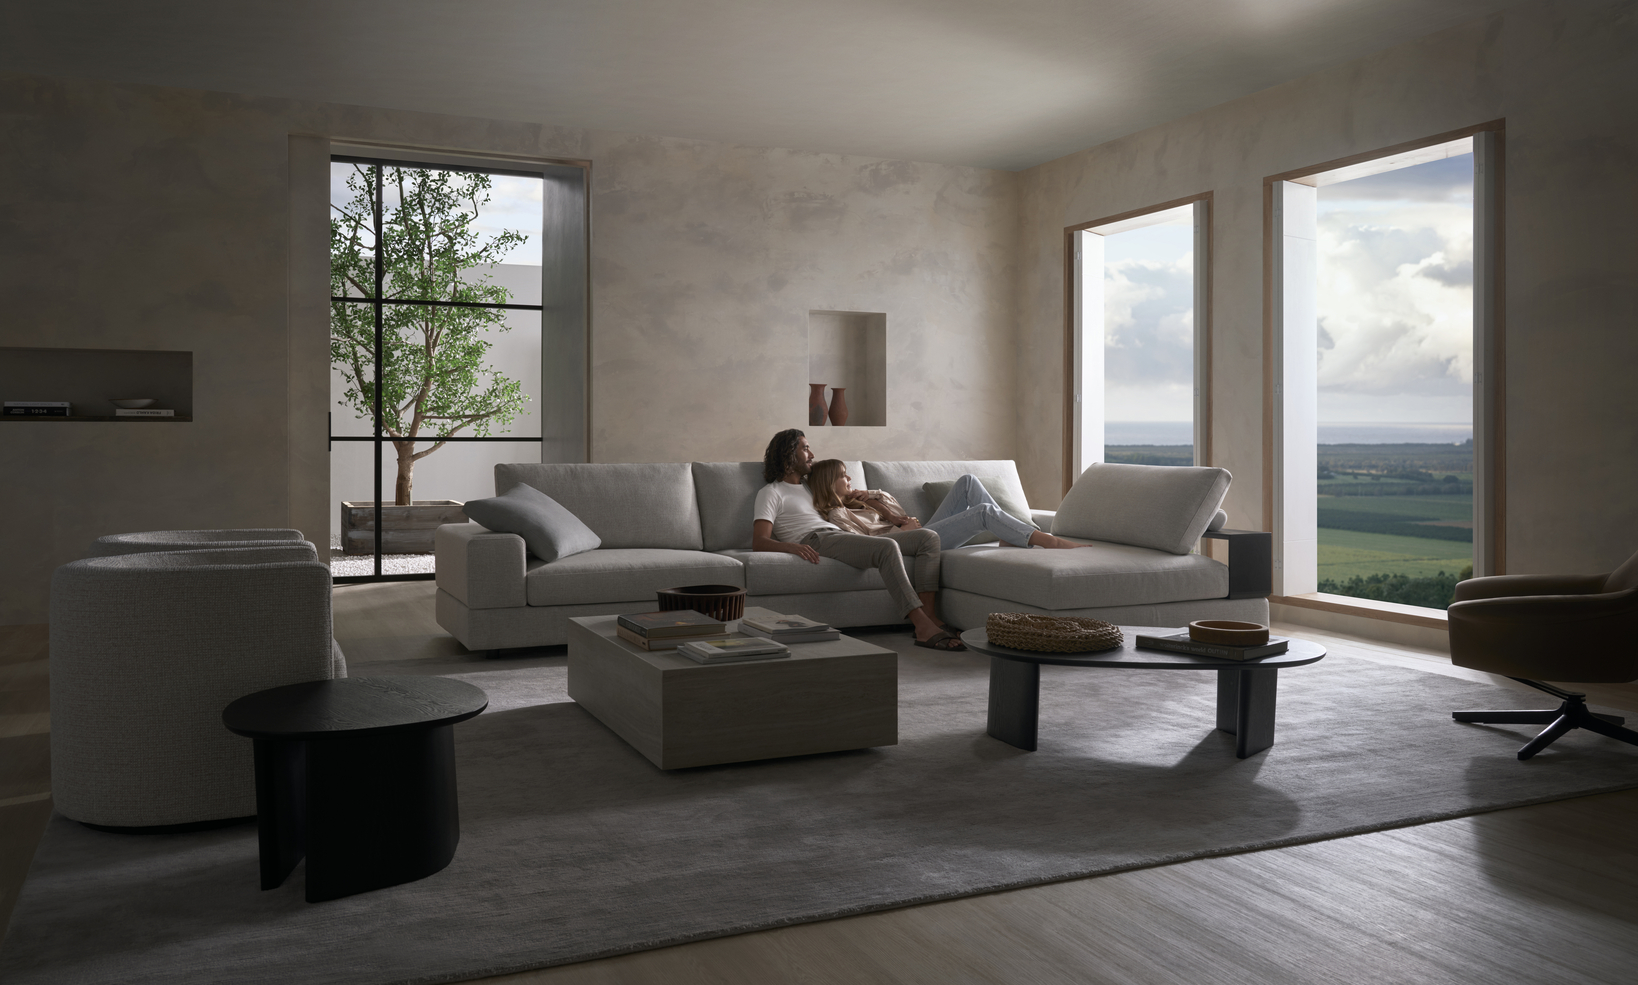 squarerooms king living couch sofa relax couple living room home cosy comfy luxury grey